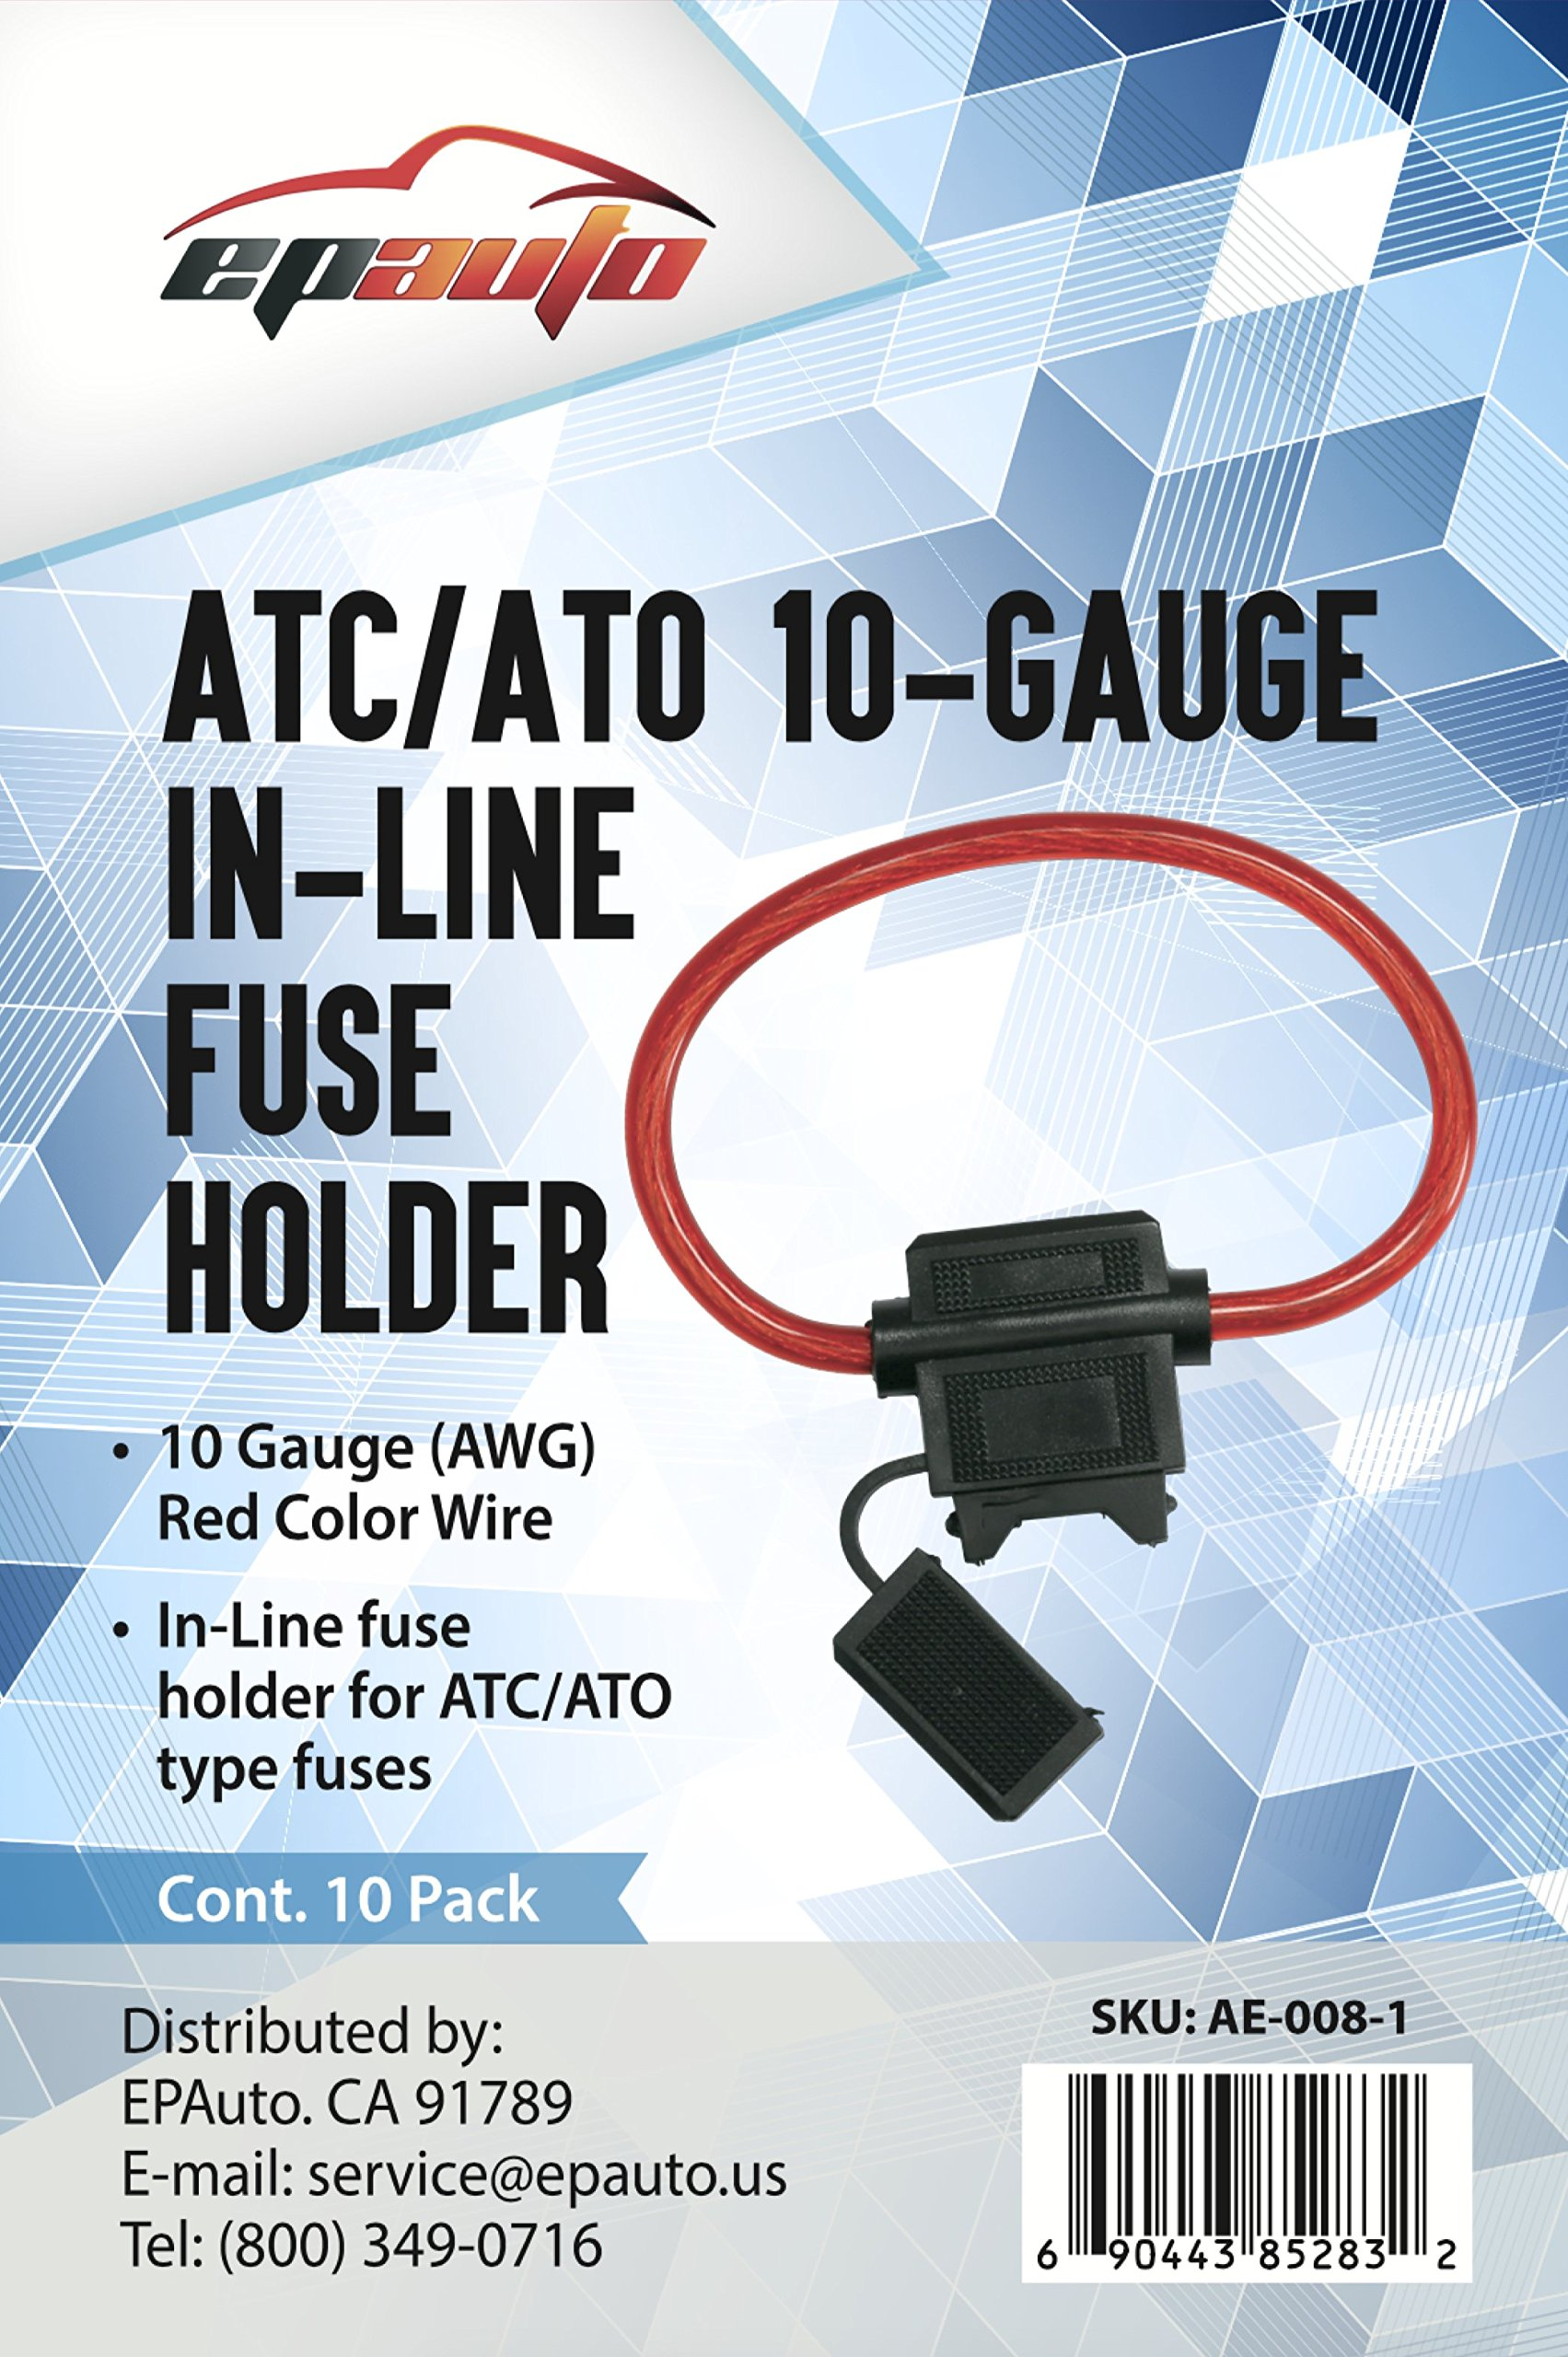 10 Pack Epauto Atc Ato Gauge 30 Amp In Line Fuse Holder Ae Automotive Box Amps 008 1 Holders Tibs